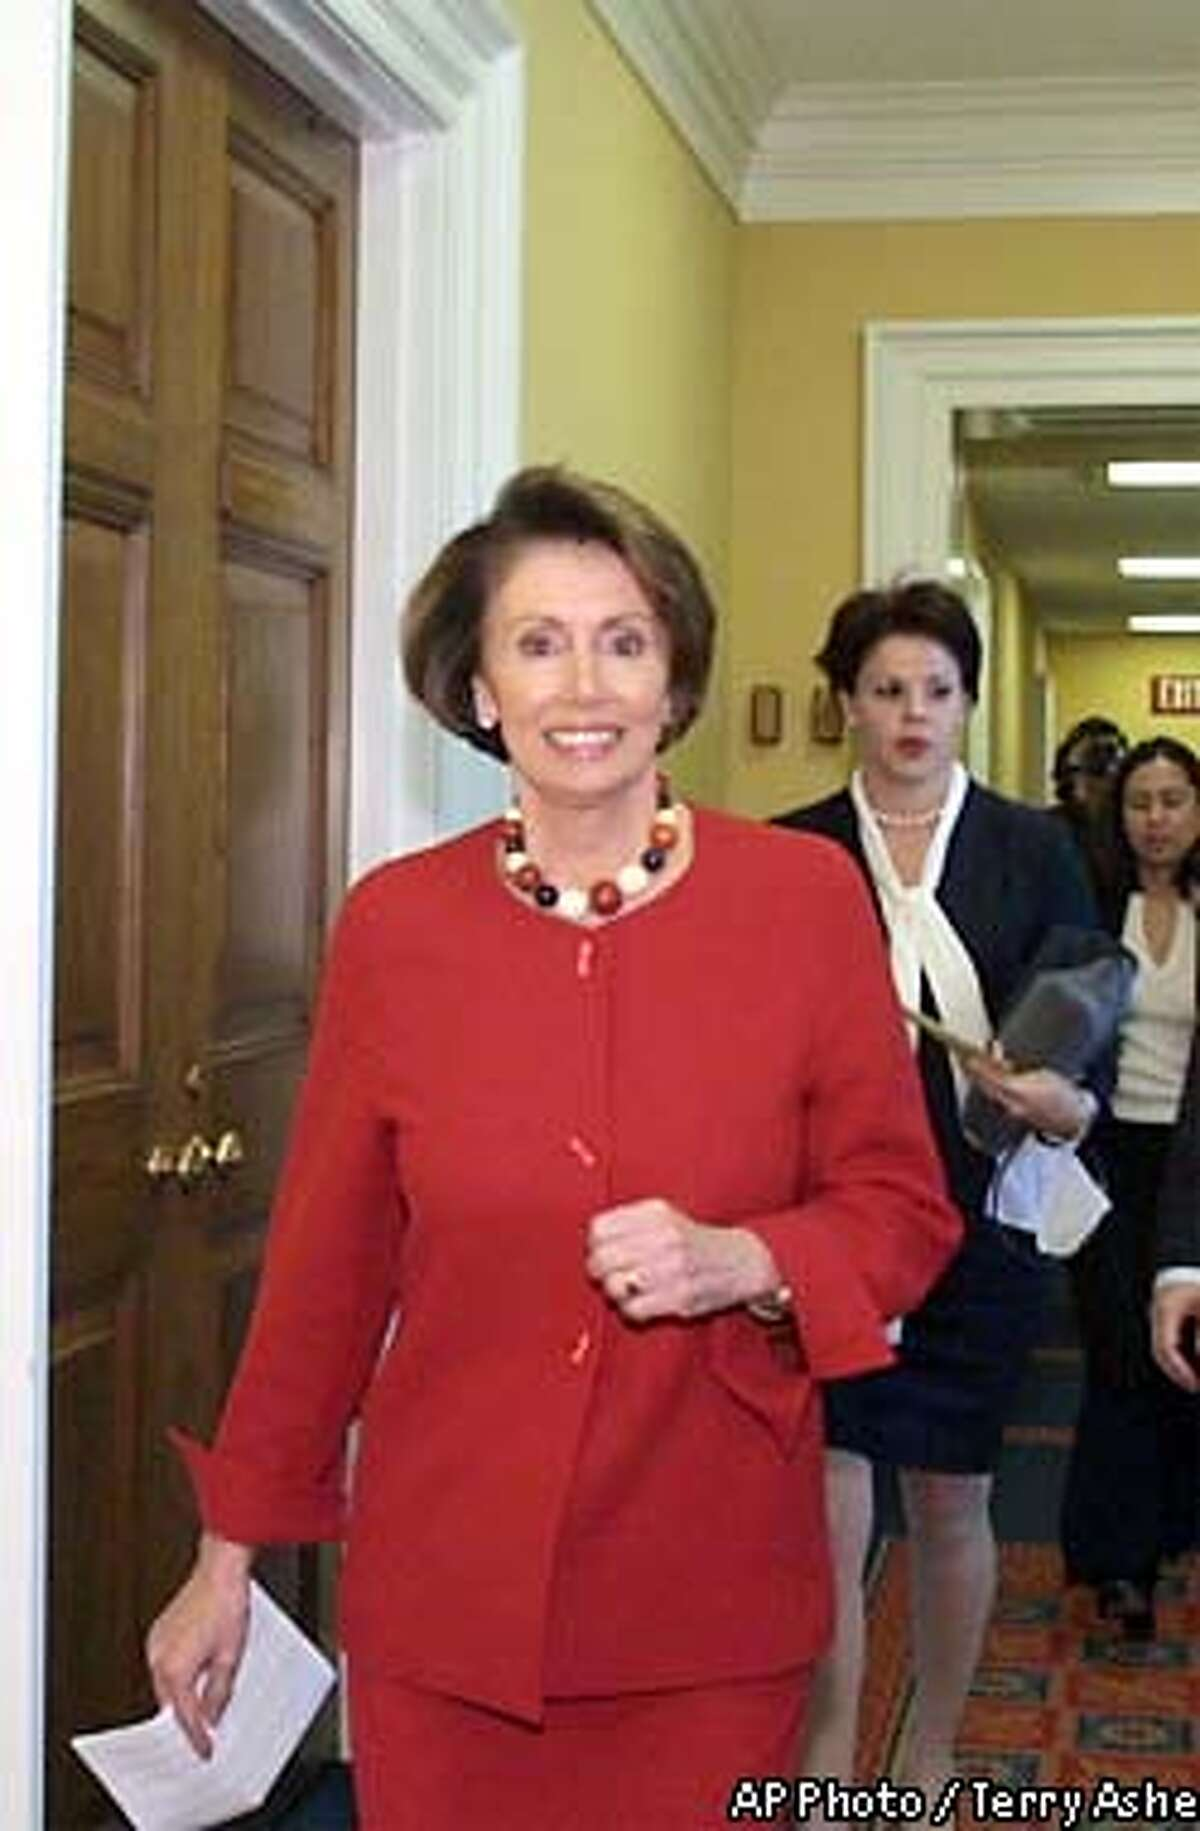 Rep. Nancy Pelosi, D-Calif., the current House minority whip and the favorite to become House minority leader, walks the halls on Capitol Hill Wednesday, Nov. 13, 2002. The election for Democratic top offices is scheduled for Thursday. (AP Photo/Terry Ashe)